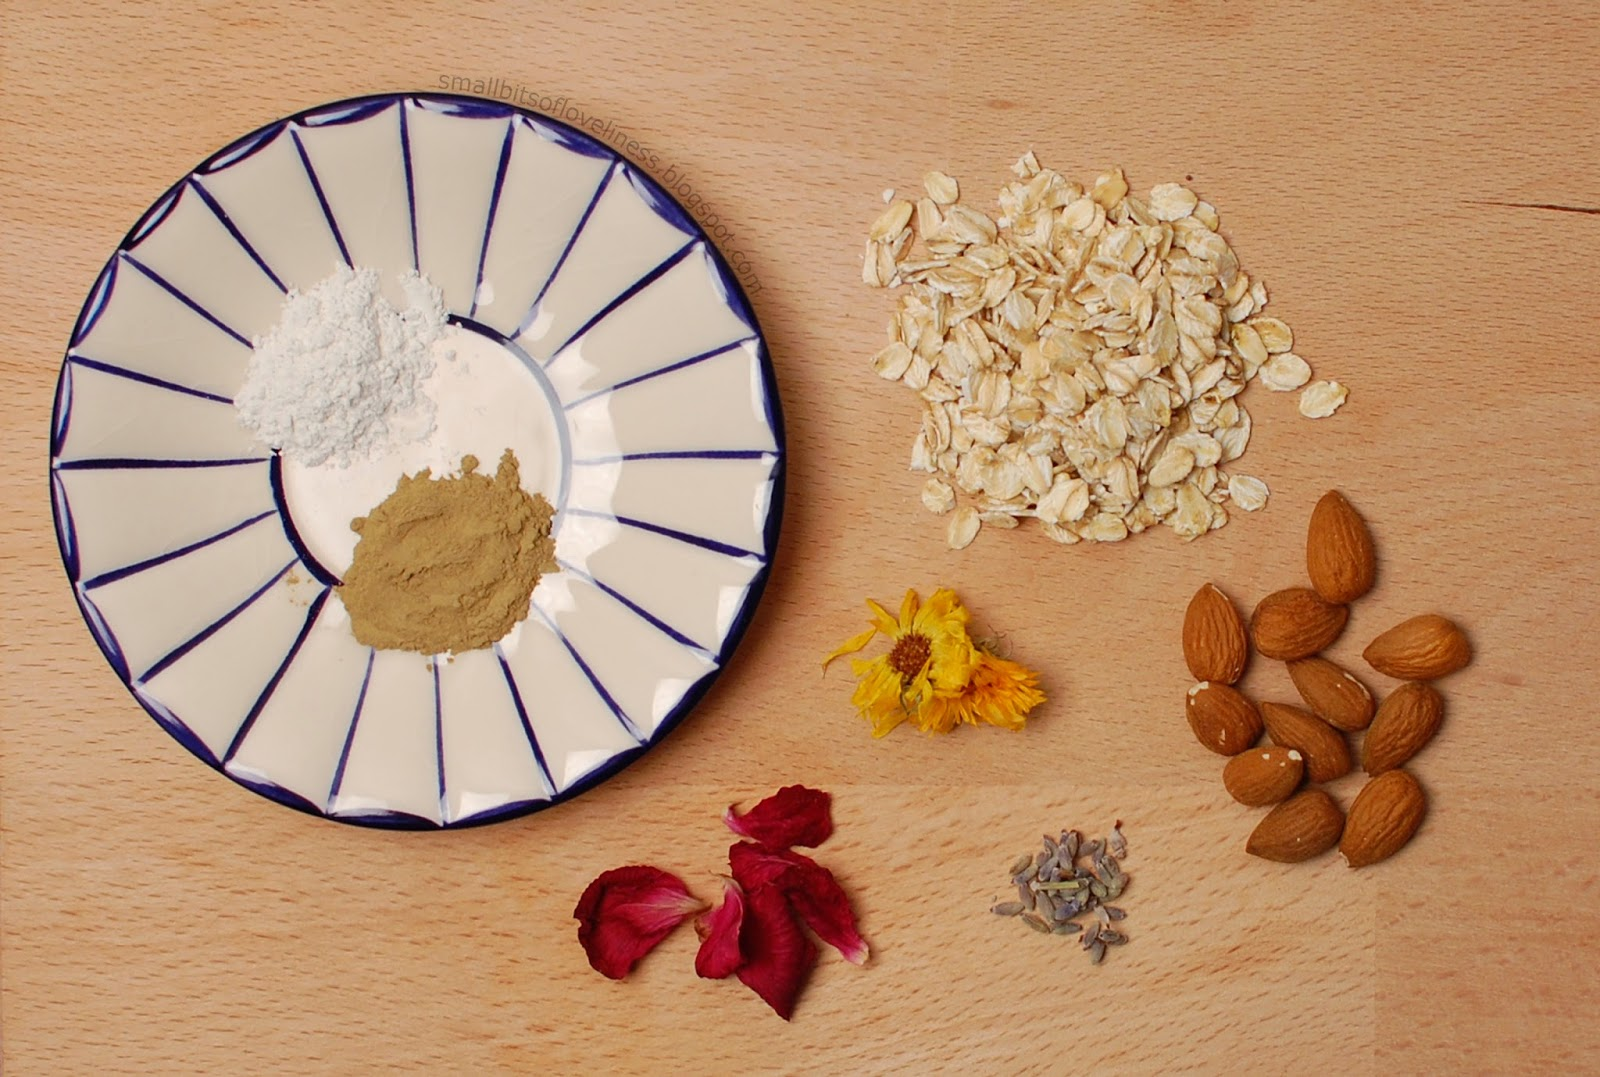 Ingredients for DIY Homemade Face Cleanser Exfoliator